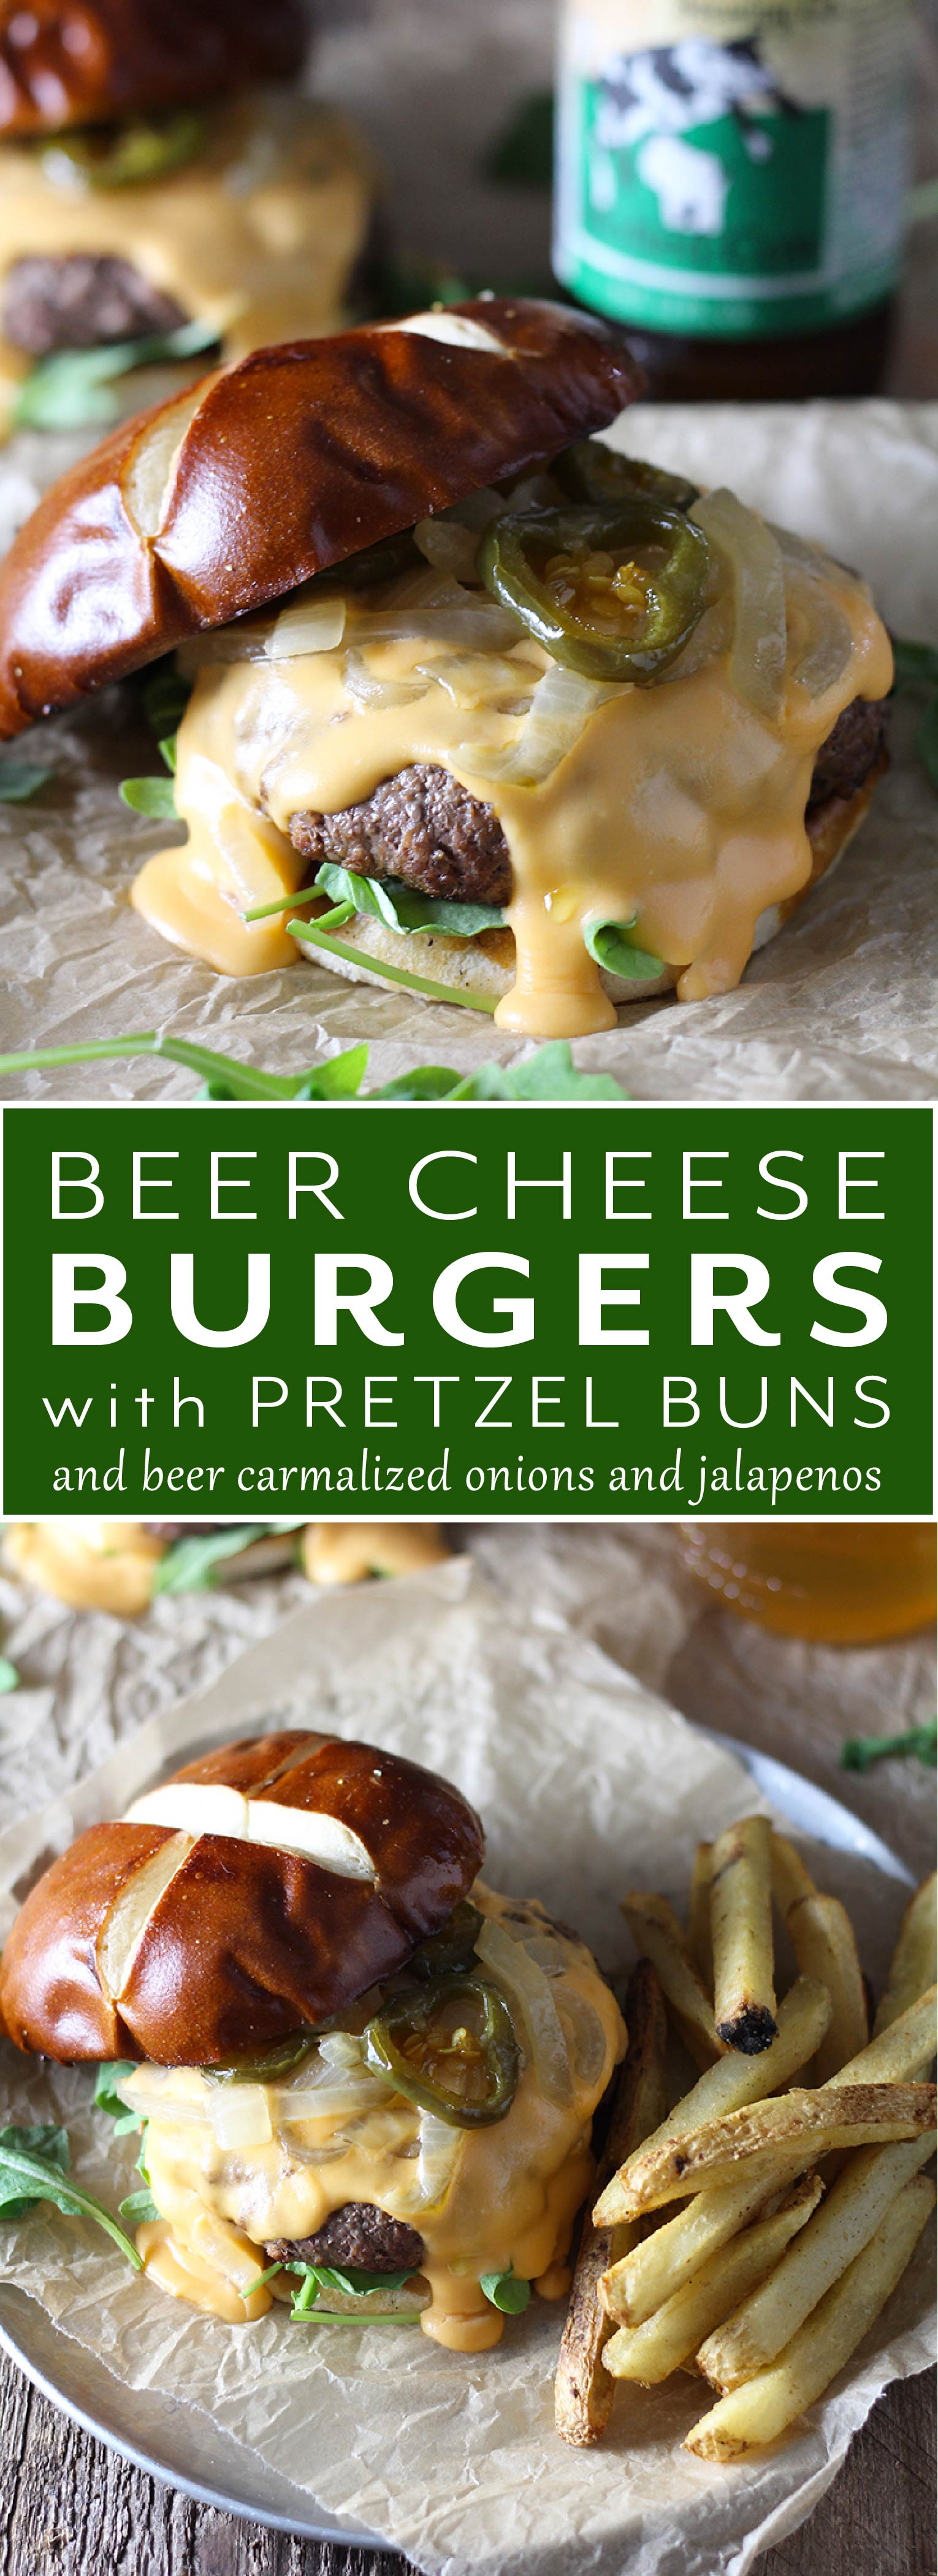 Beer Cheese Burgers on Pretzel Buns